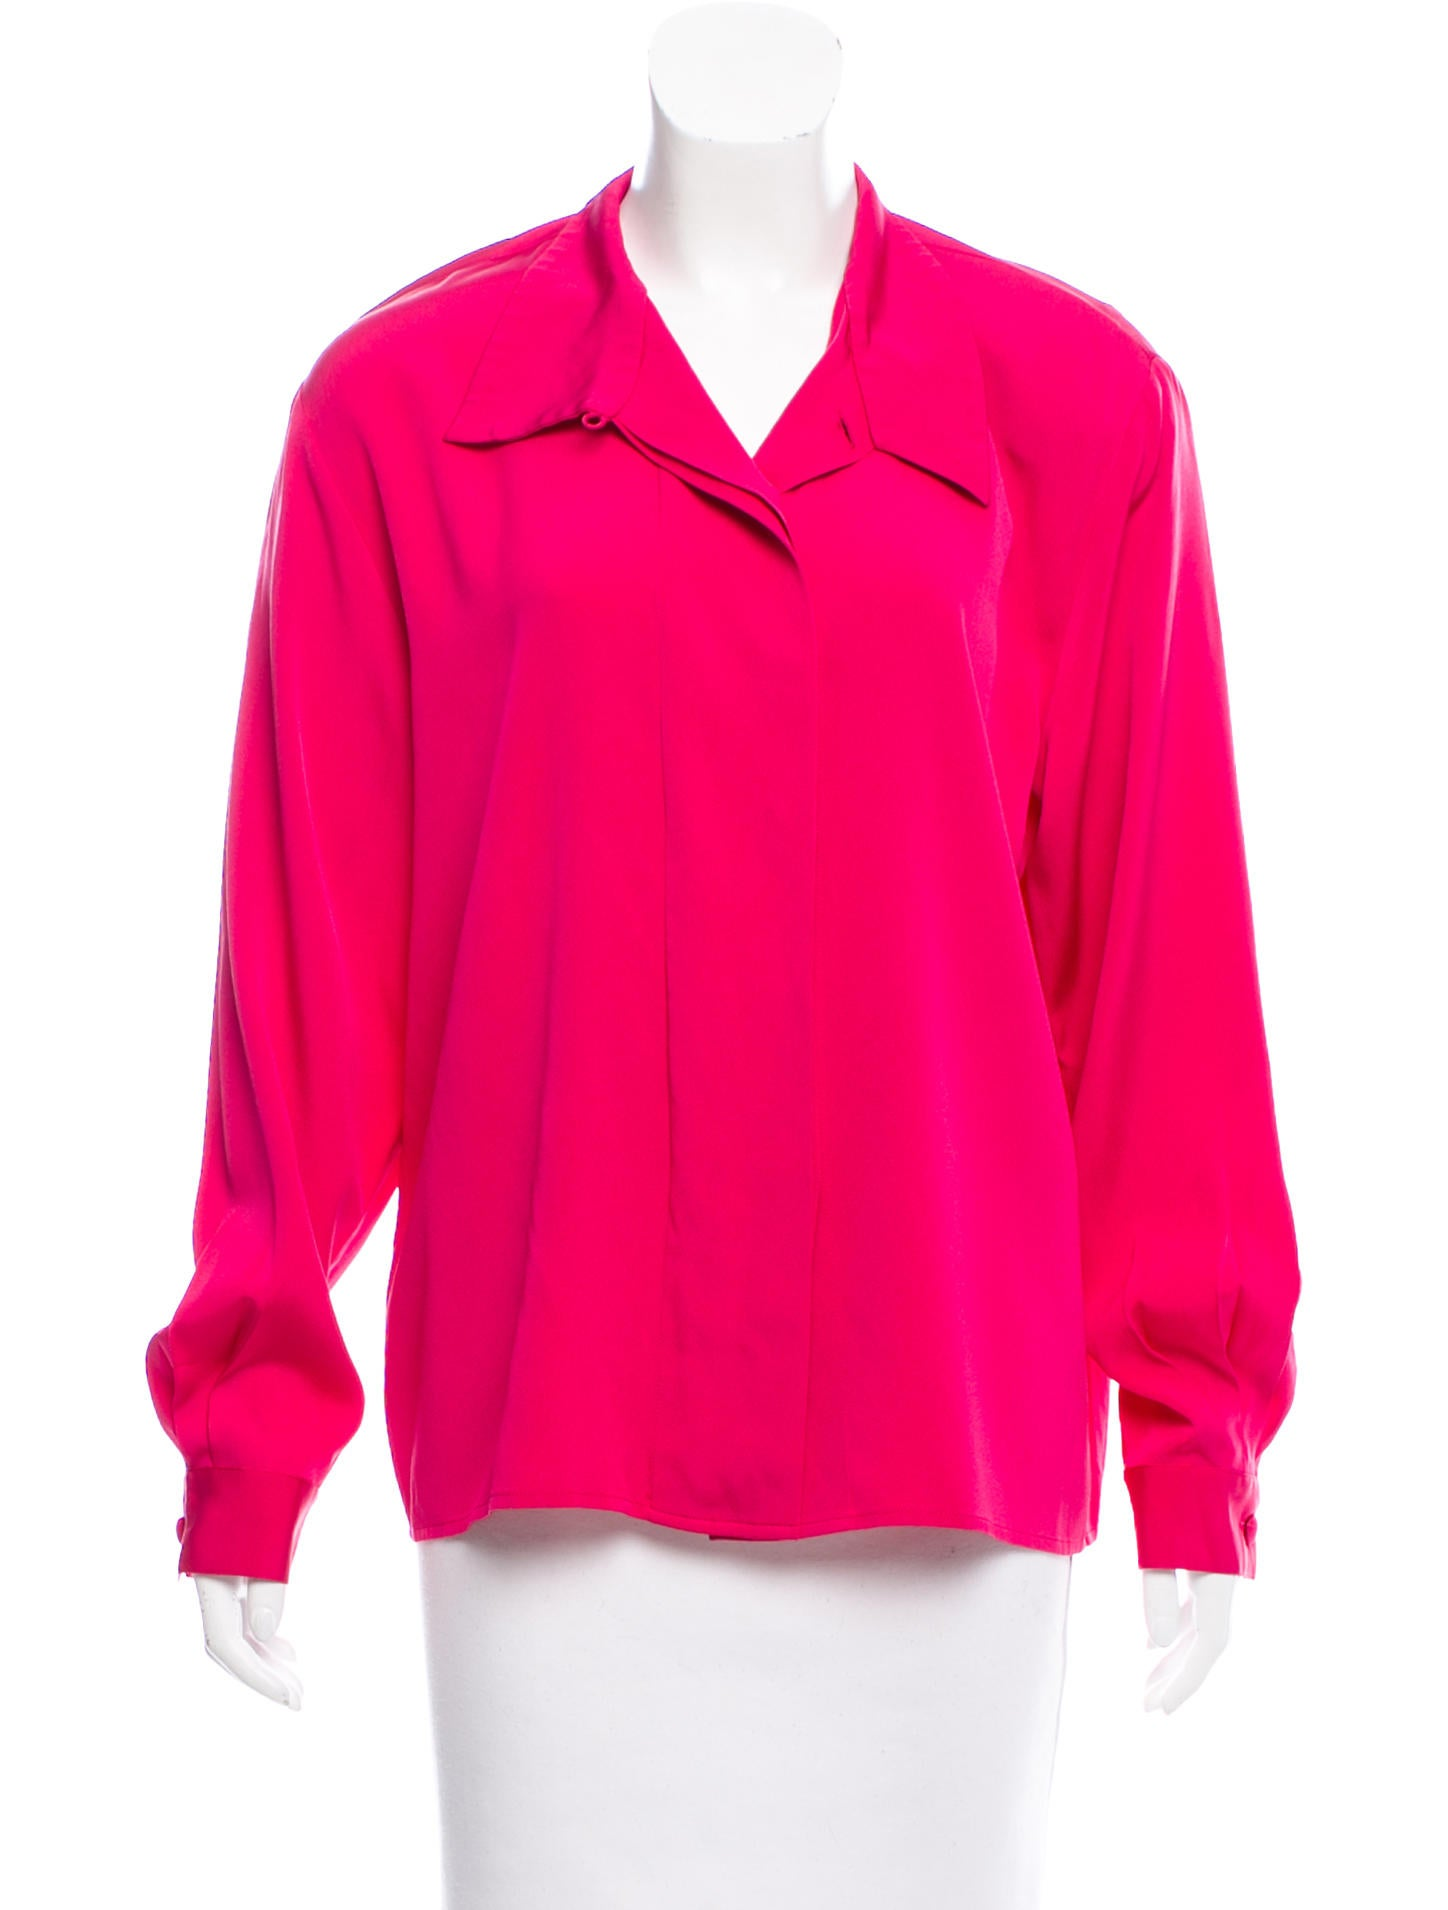 Christian dior silk button up top clothing chr64882 for Christian dior button up shirt